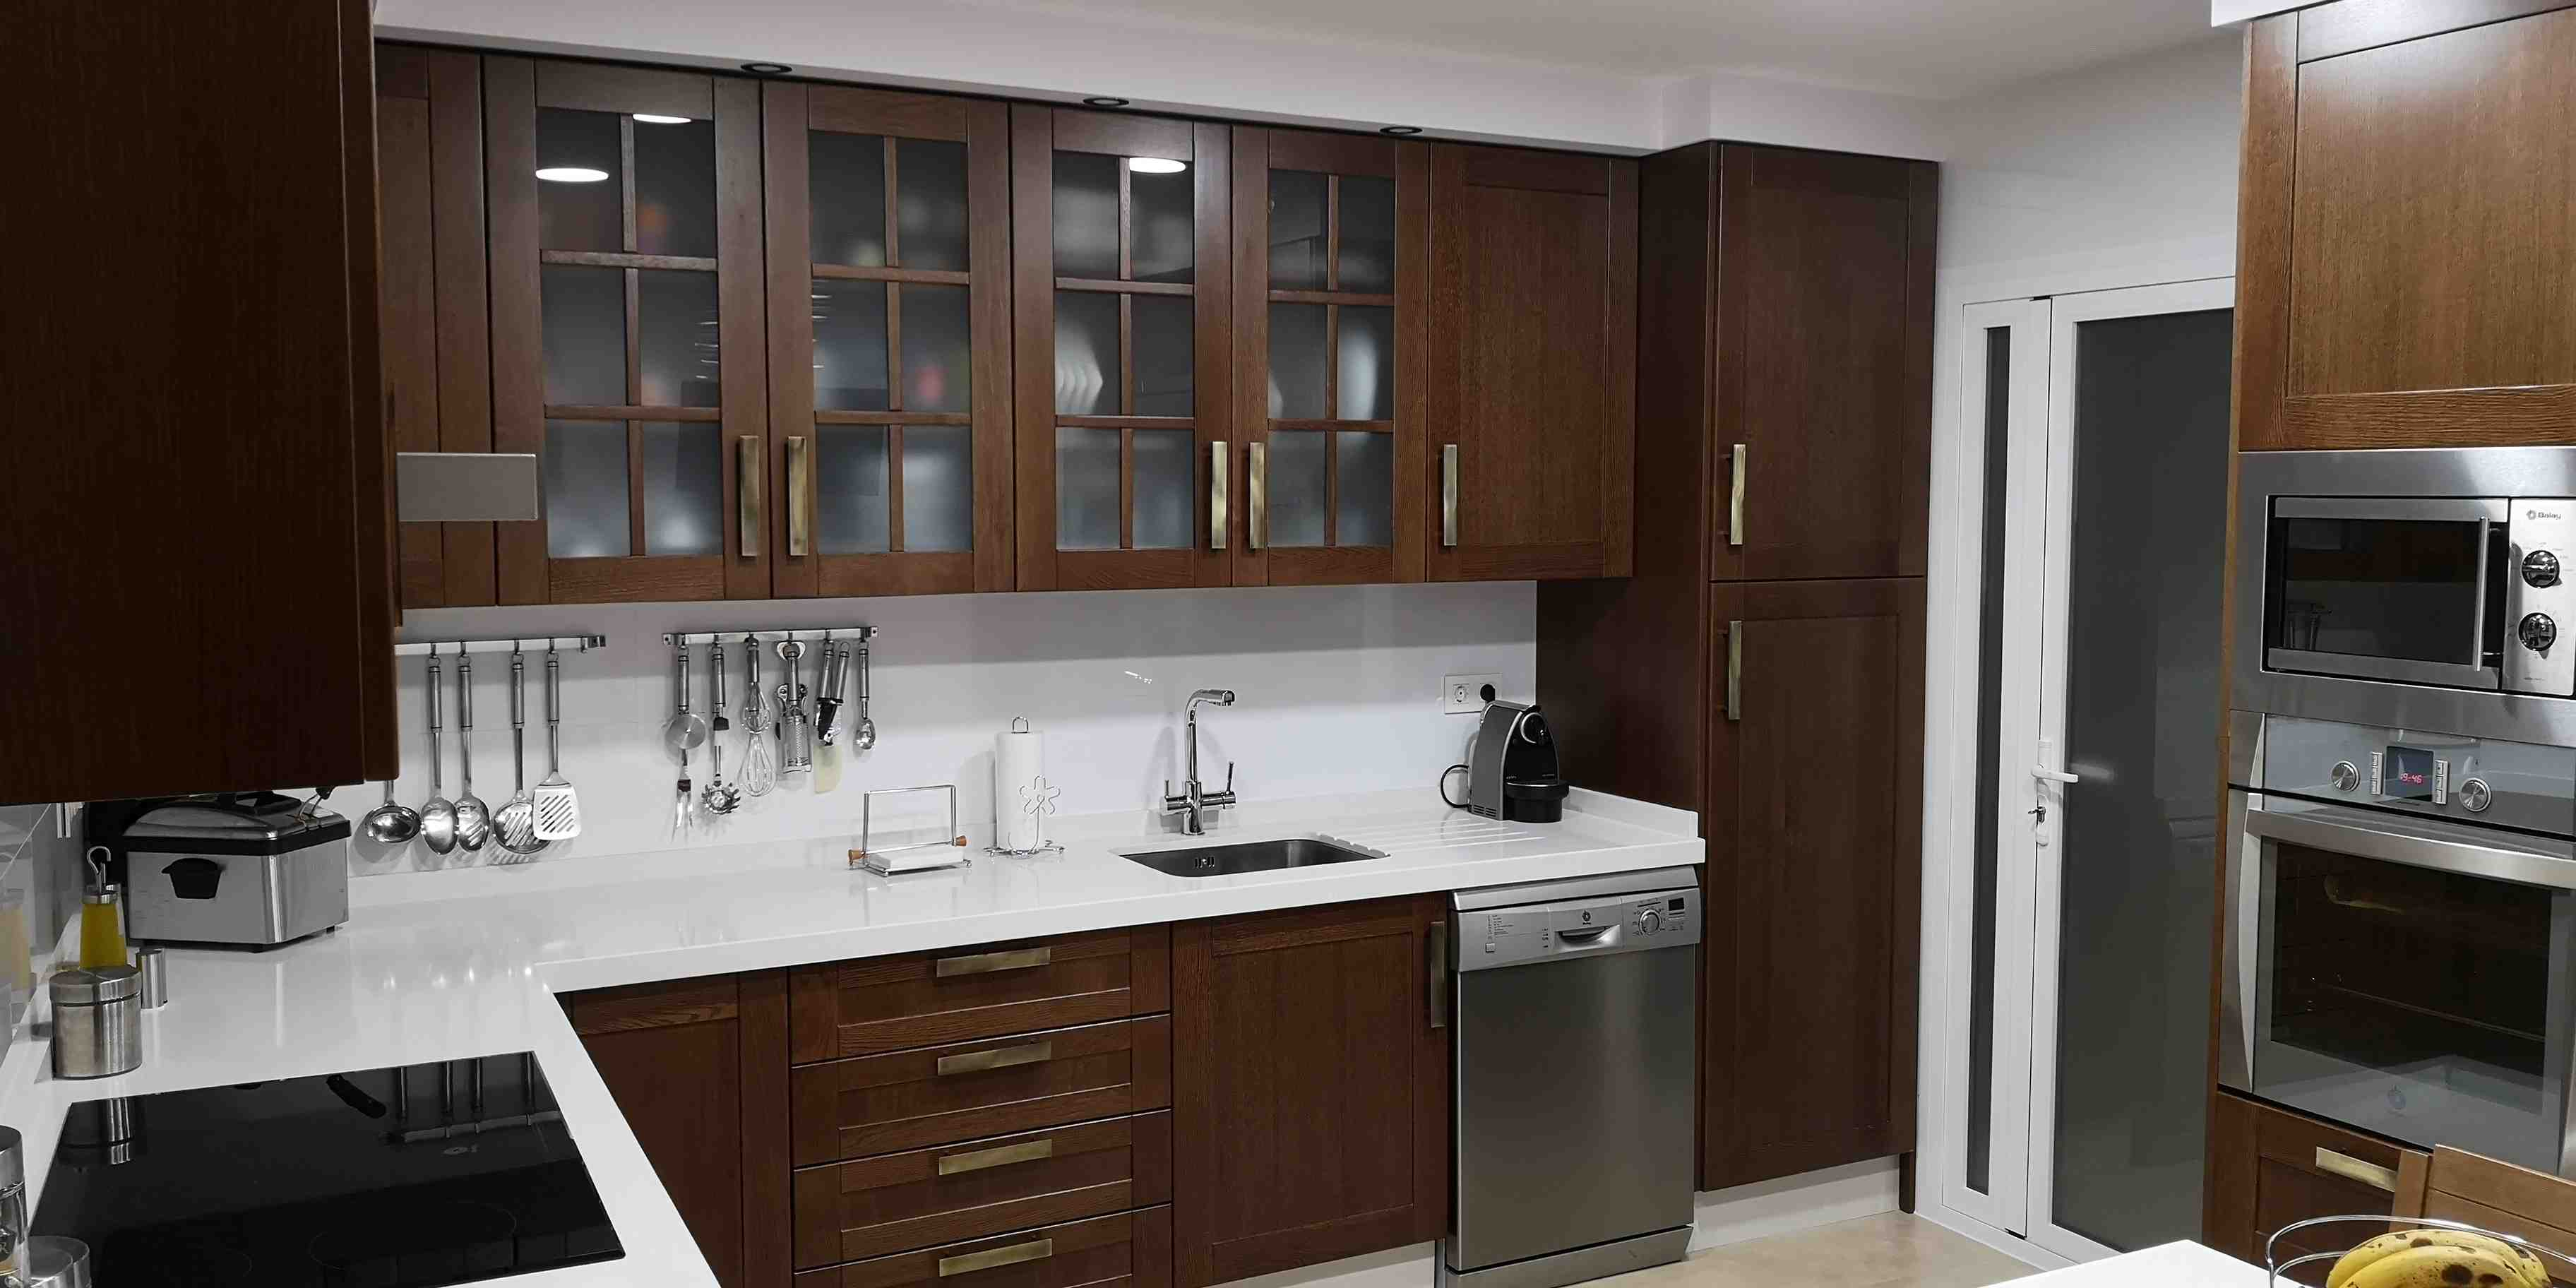 Carpinter a familia murcia cocina en roble macizo color - Cocinas color roble ...